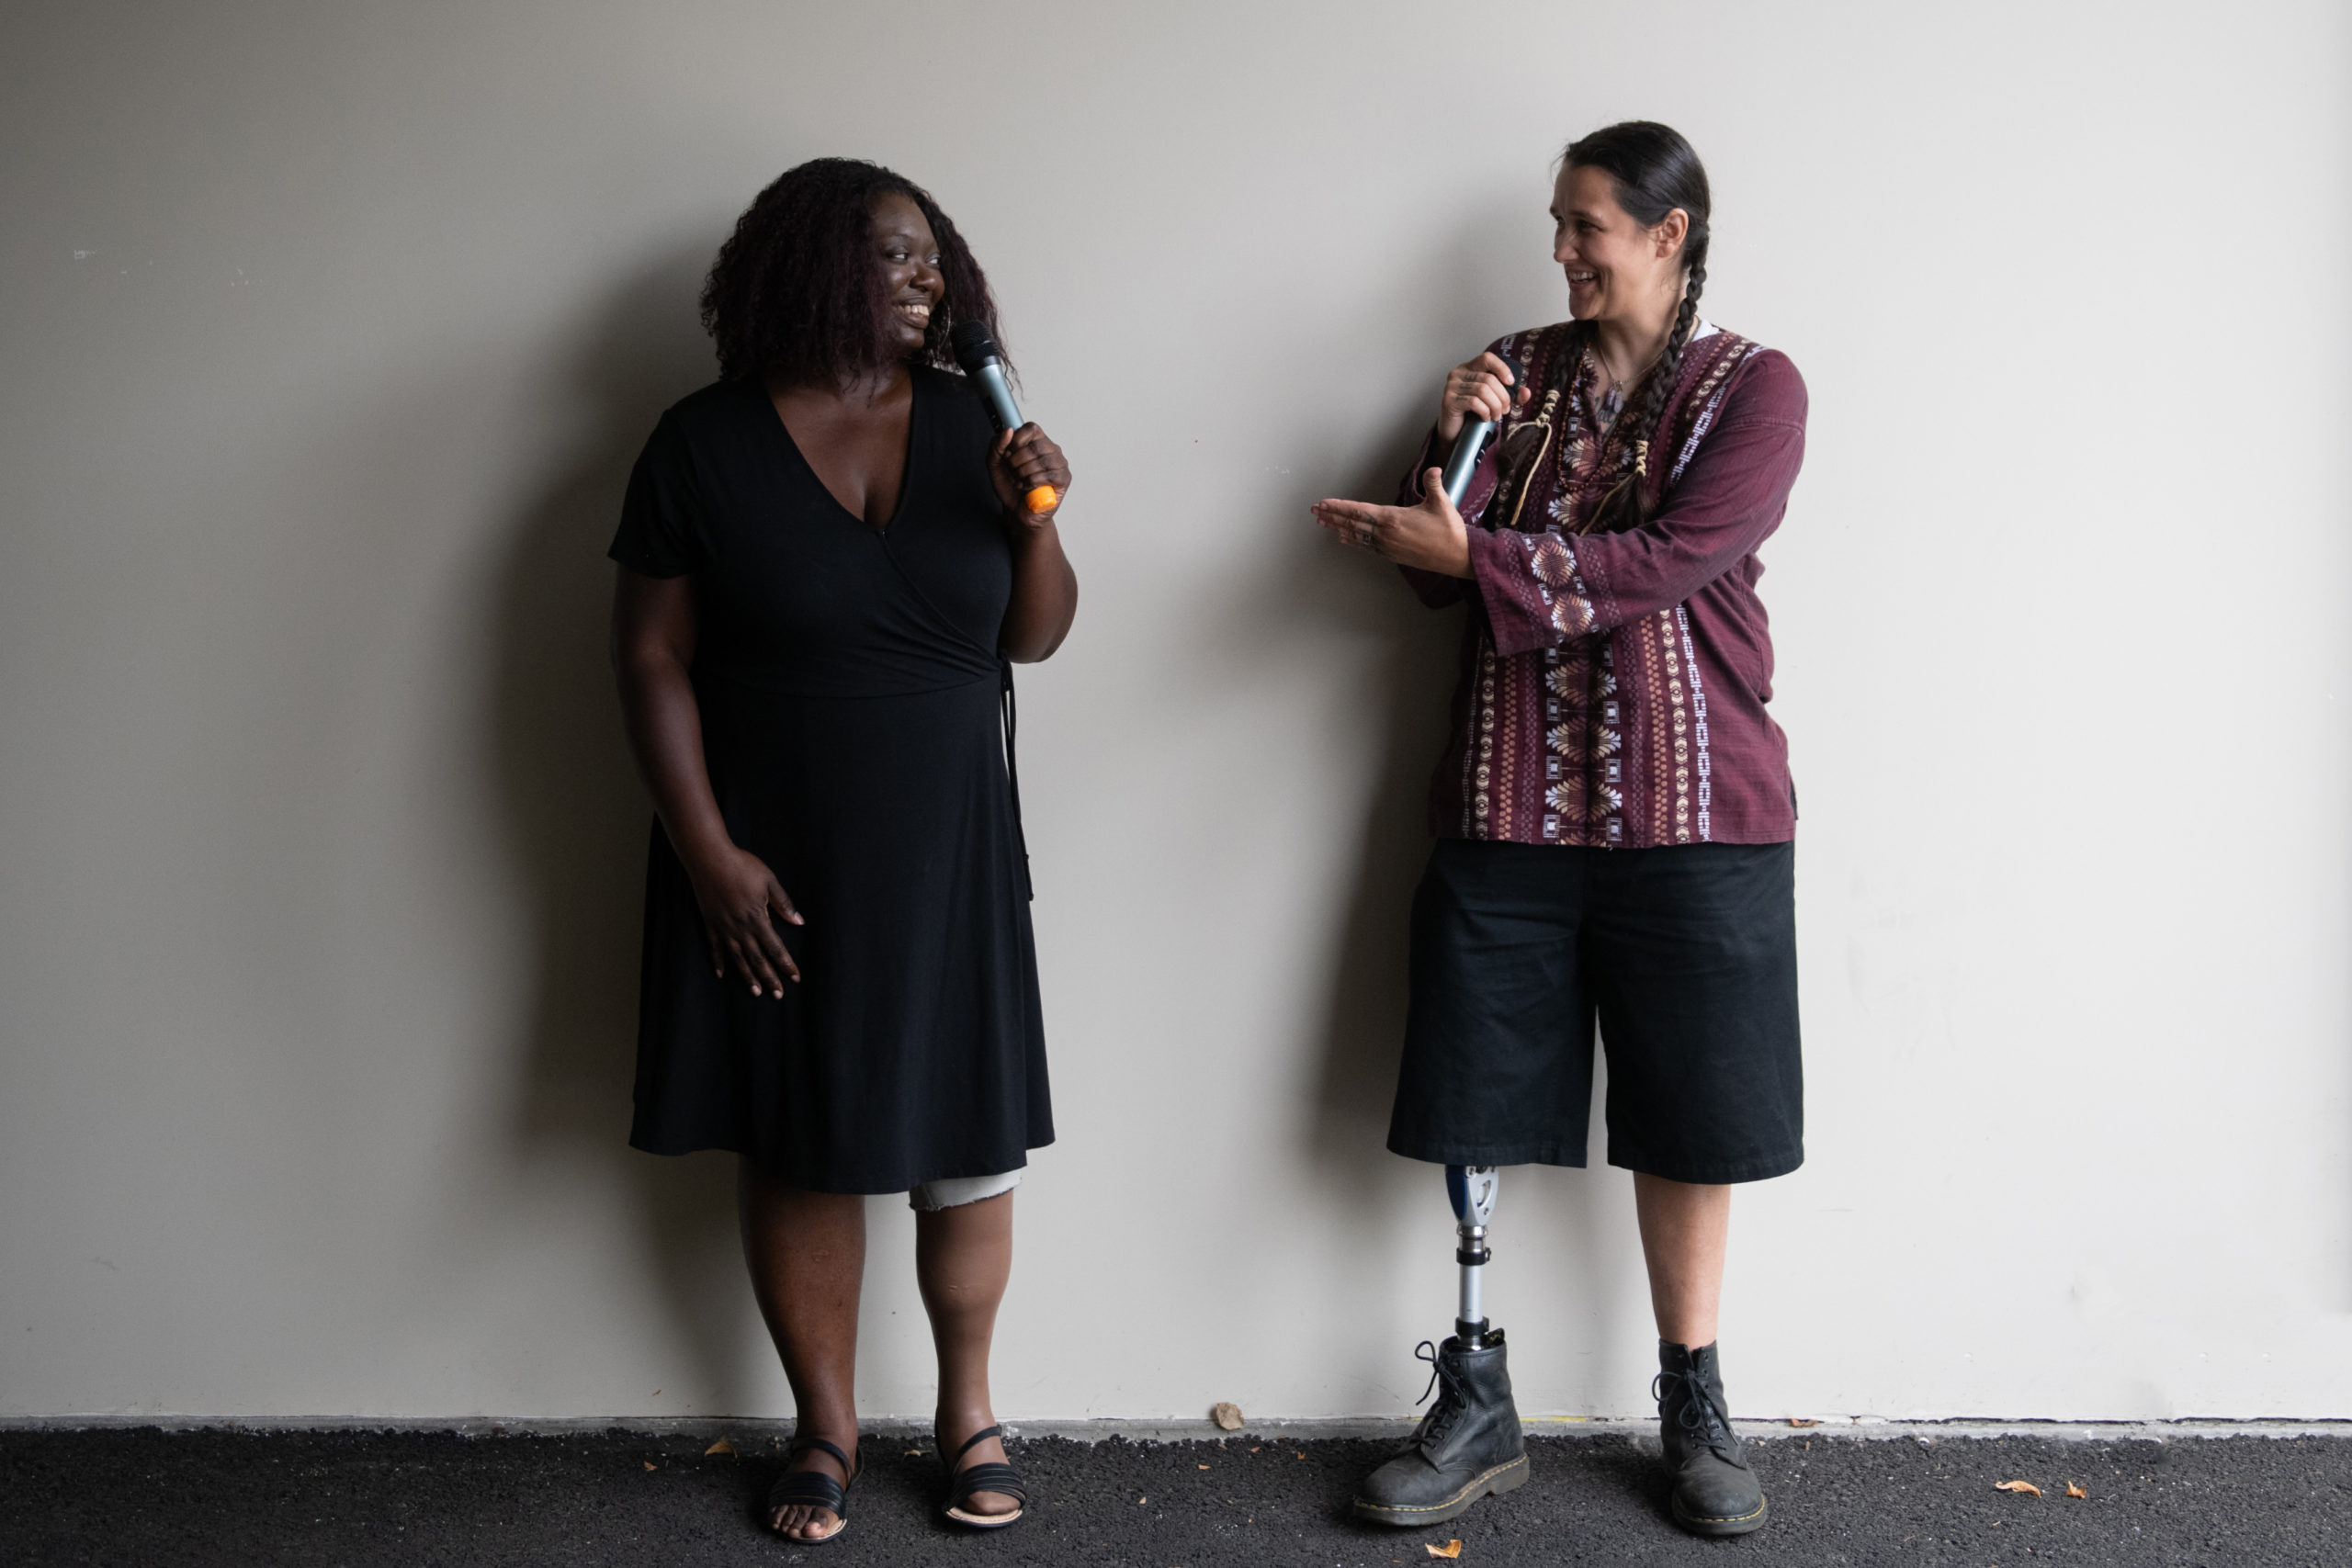 An Indigenous Two-Spirit person and a Black woman face each other and gesture while smiling and speaking into microphones. They are both wearing prosthetic legs.